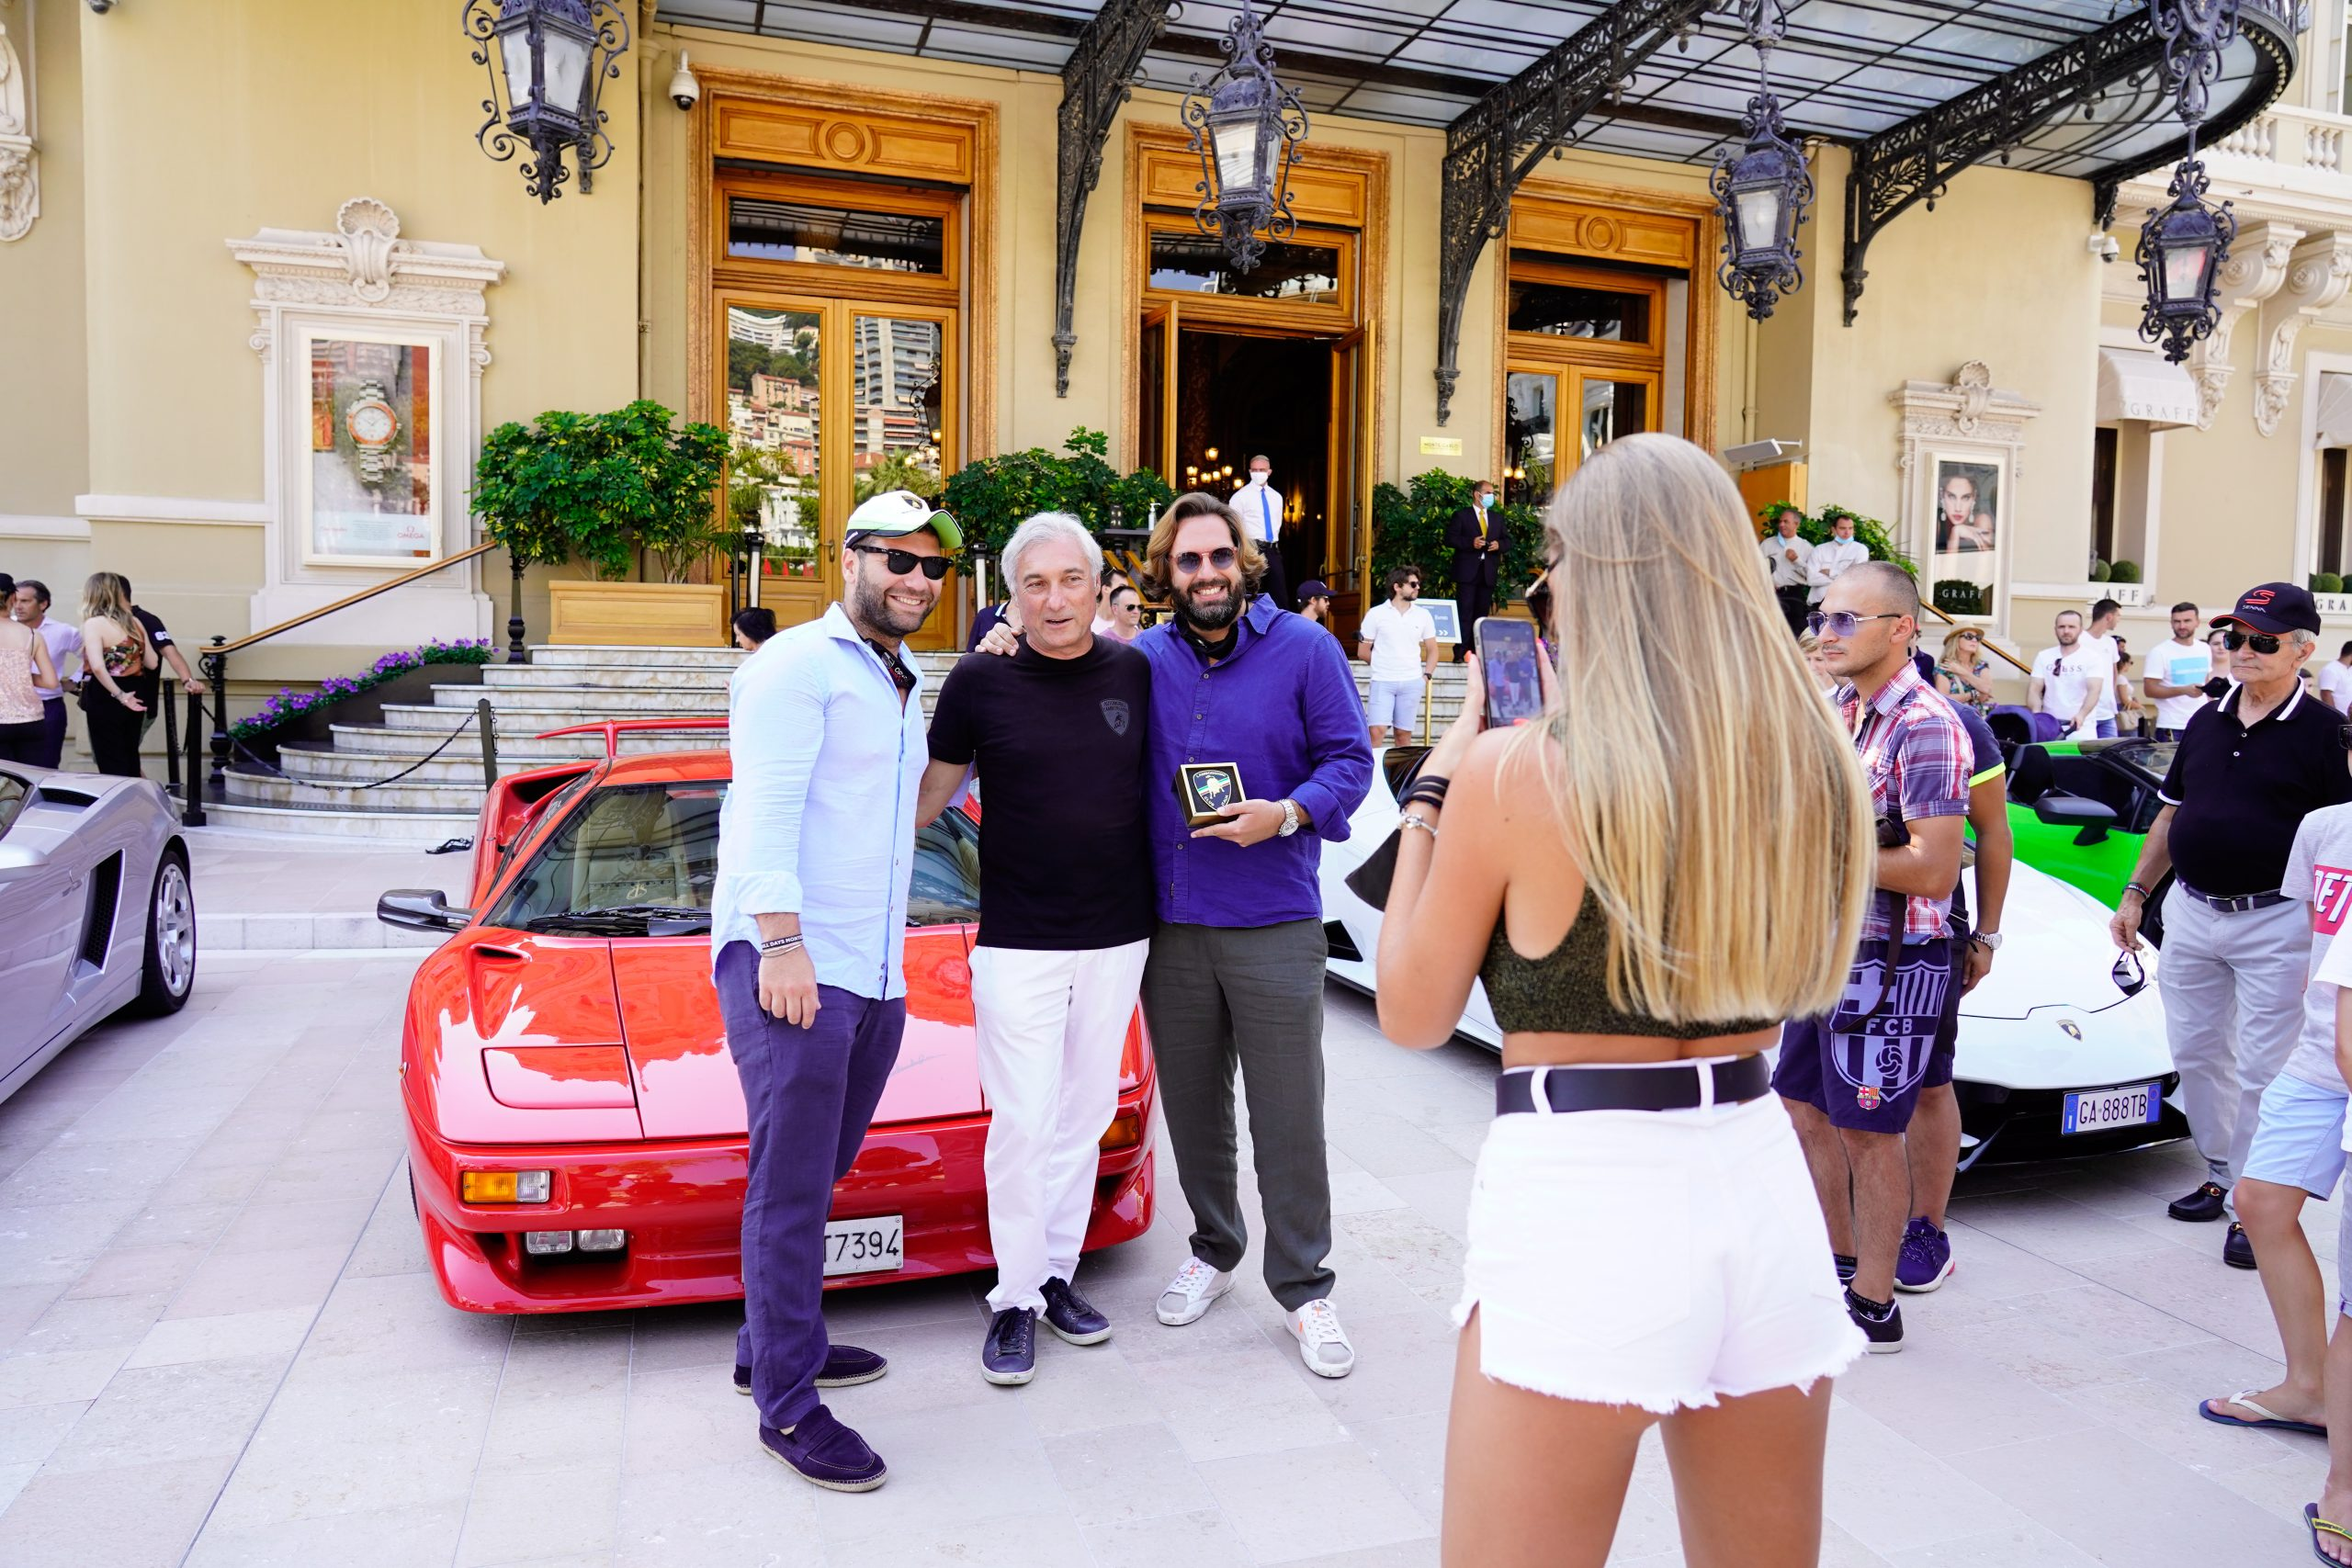 People taking a photo in front of a Lamborghini